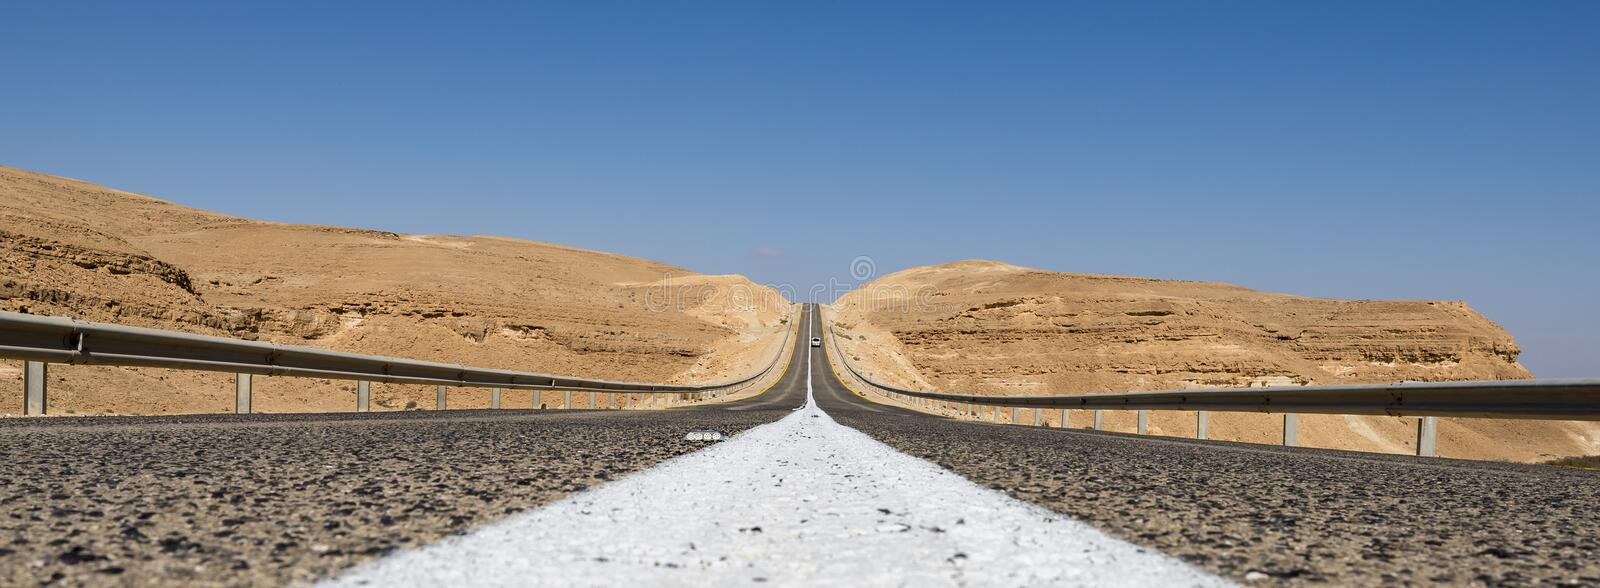 Road in desert of the Negev, Israel royalty free stock photo